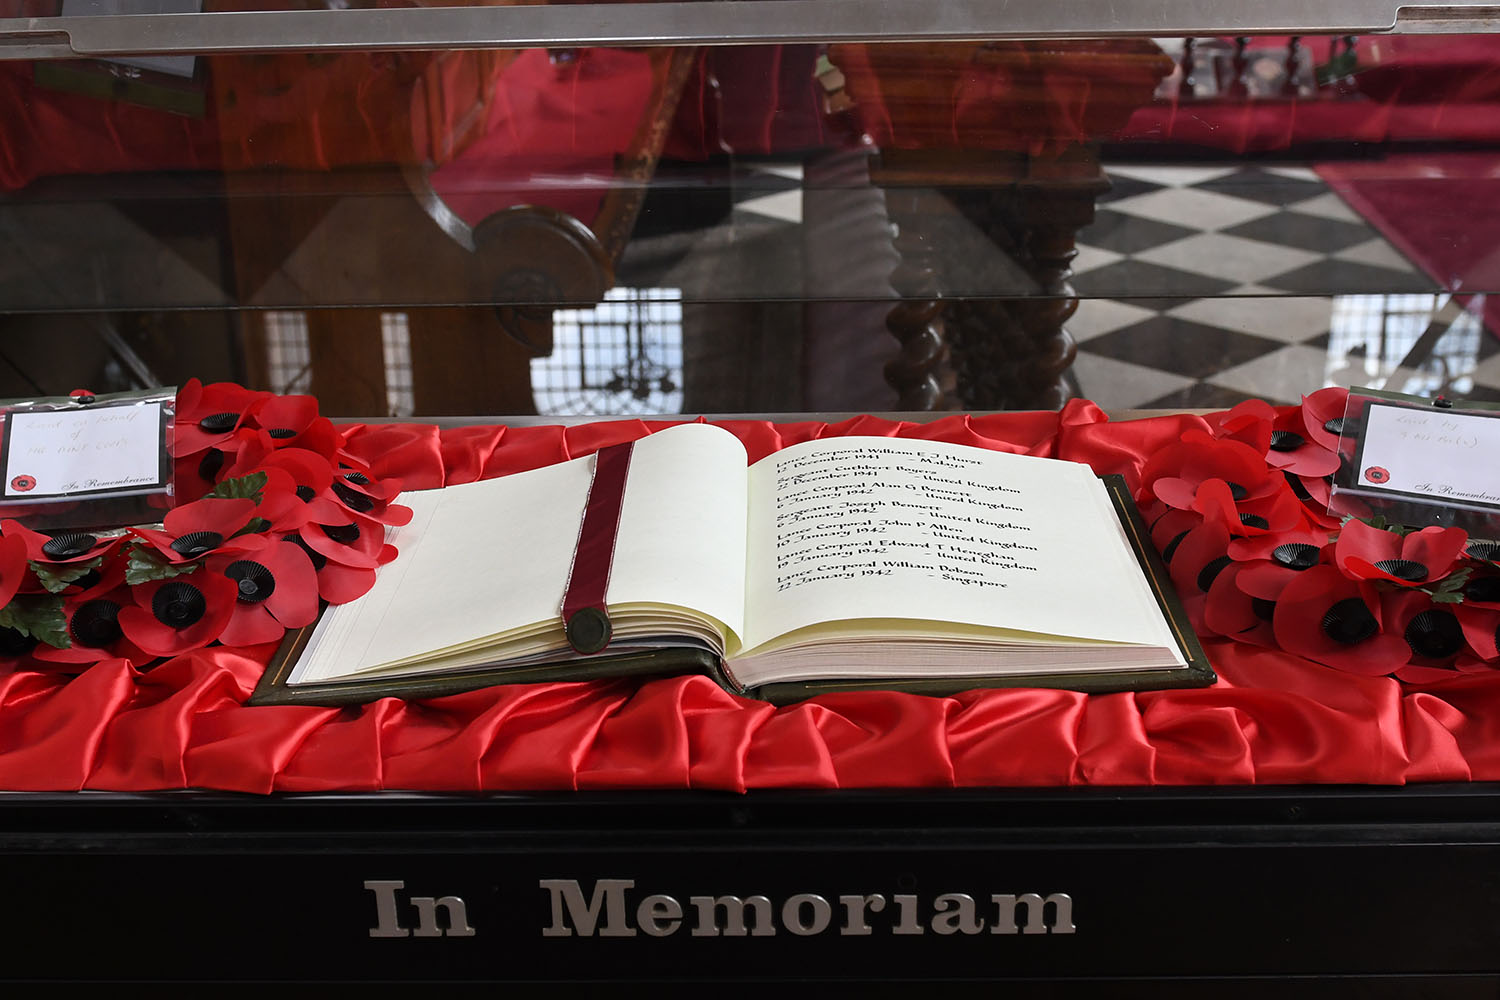 An open book of remembrance on a table with red silk and poppies, marked 'In Memoriam'.